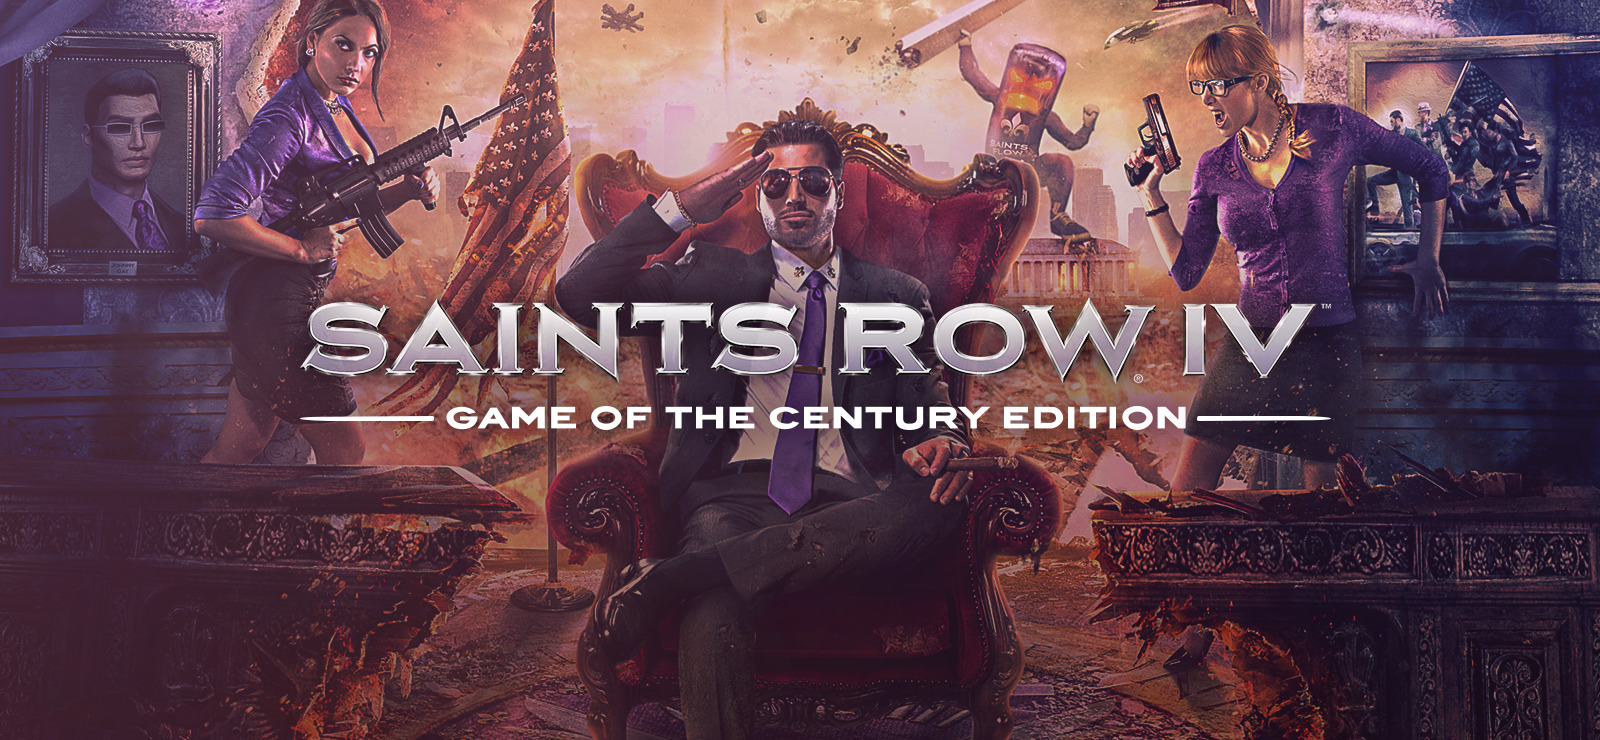 Saints Row IV: Game of the Century Edition ✅ (STEAM) RU